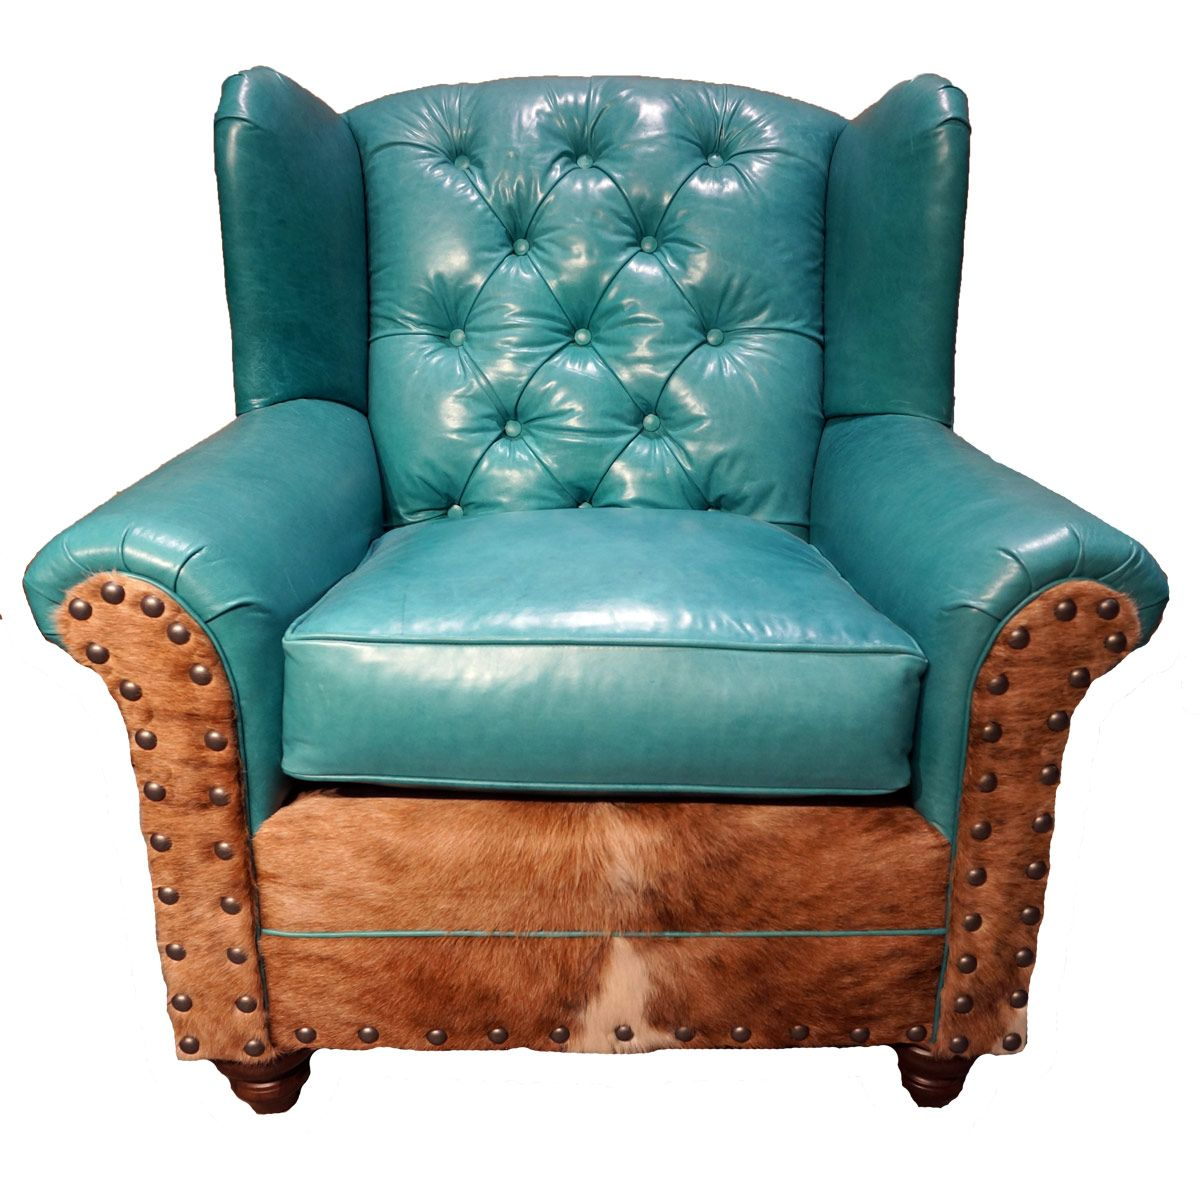 Albuquerque Turquoise Oversized Wingback Chair